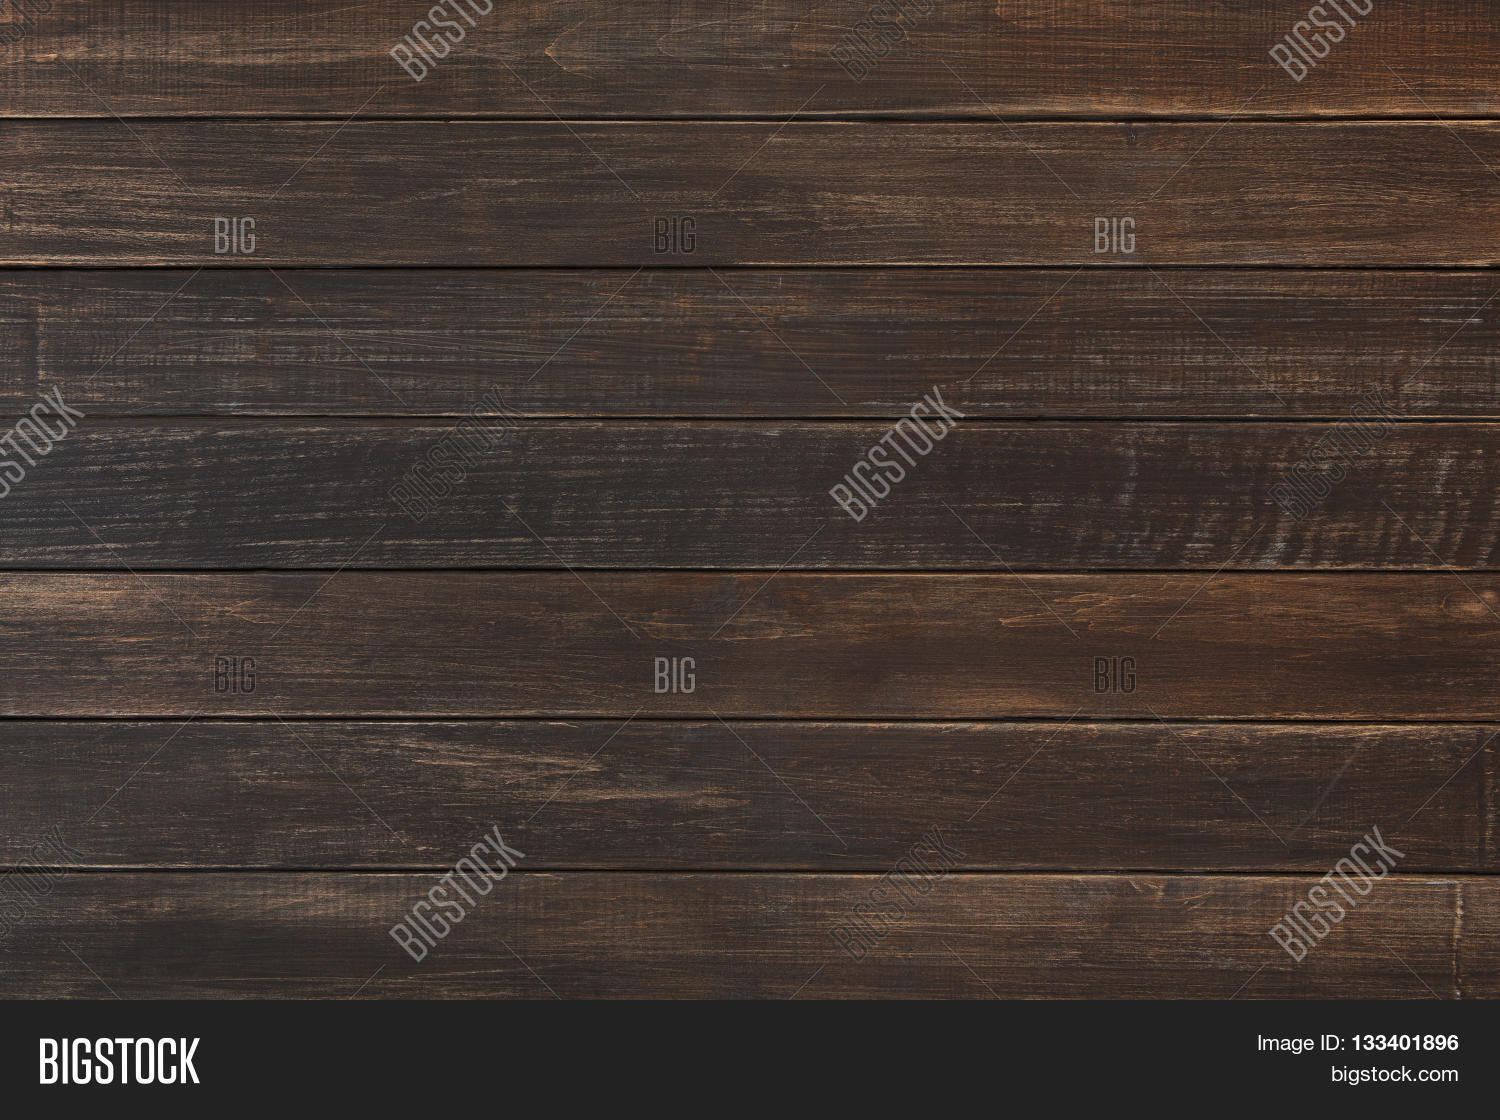 rustic brown wood background - photo #19